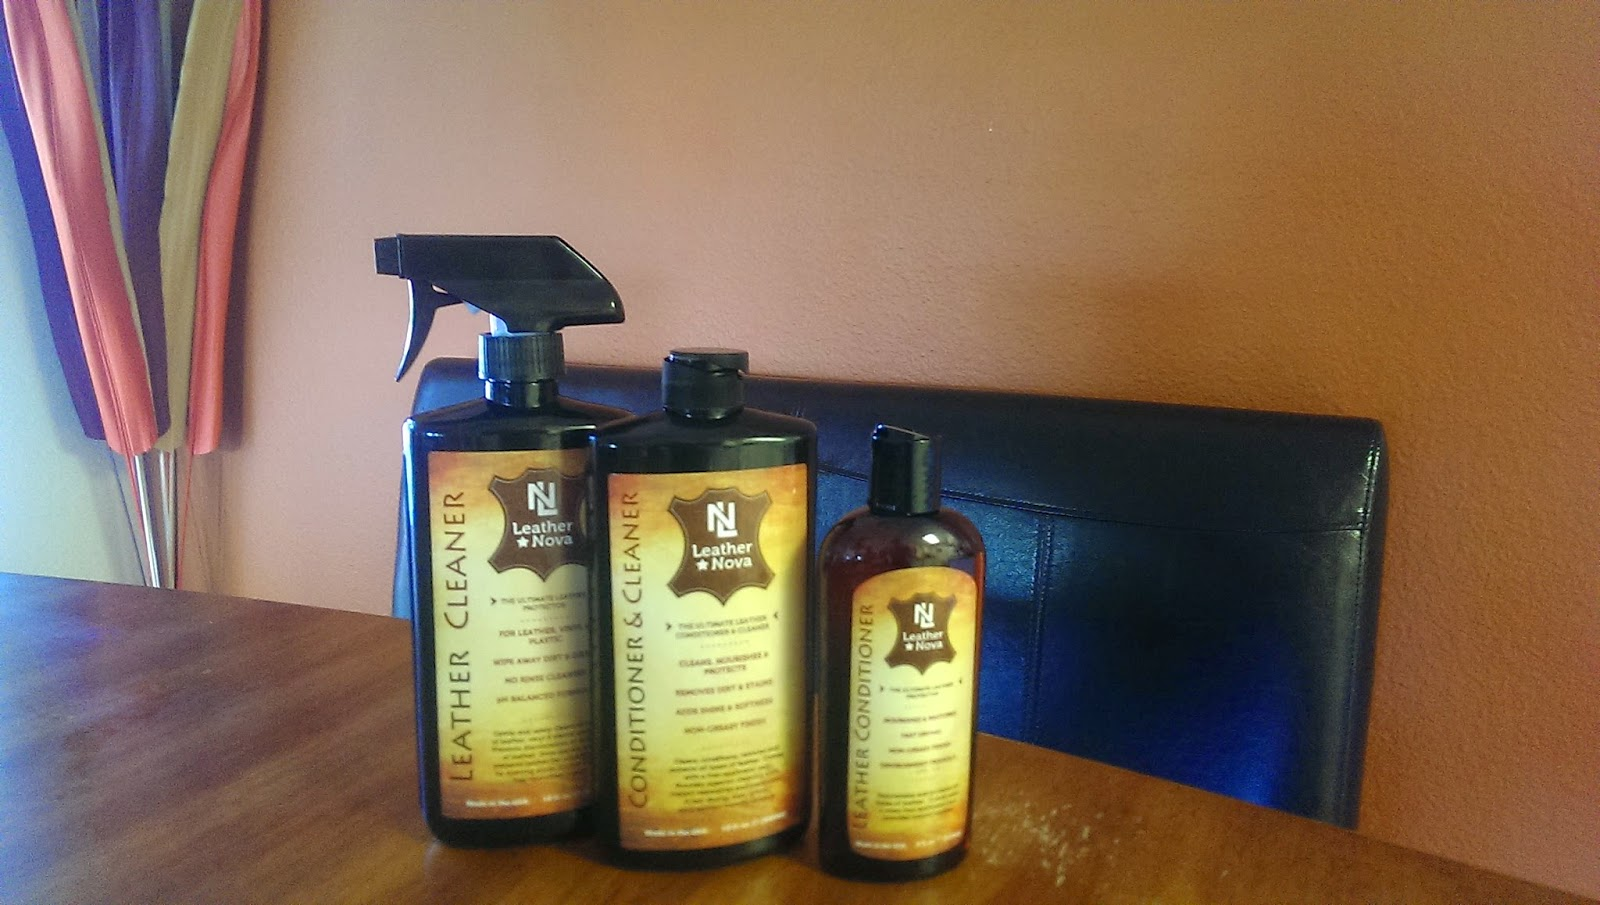 Leather%2BCleaner My Furniture Looks Like New After Using Leather Nova - Leather Nova Product Review